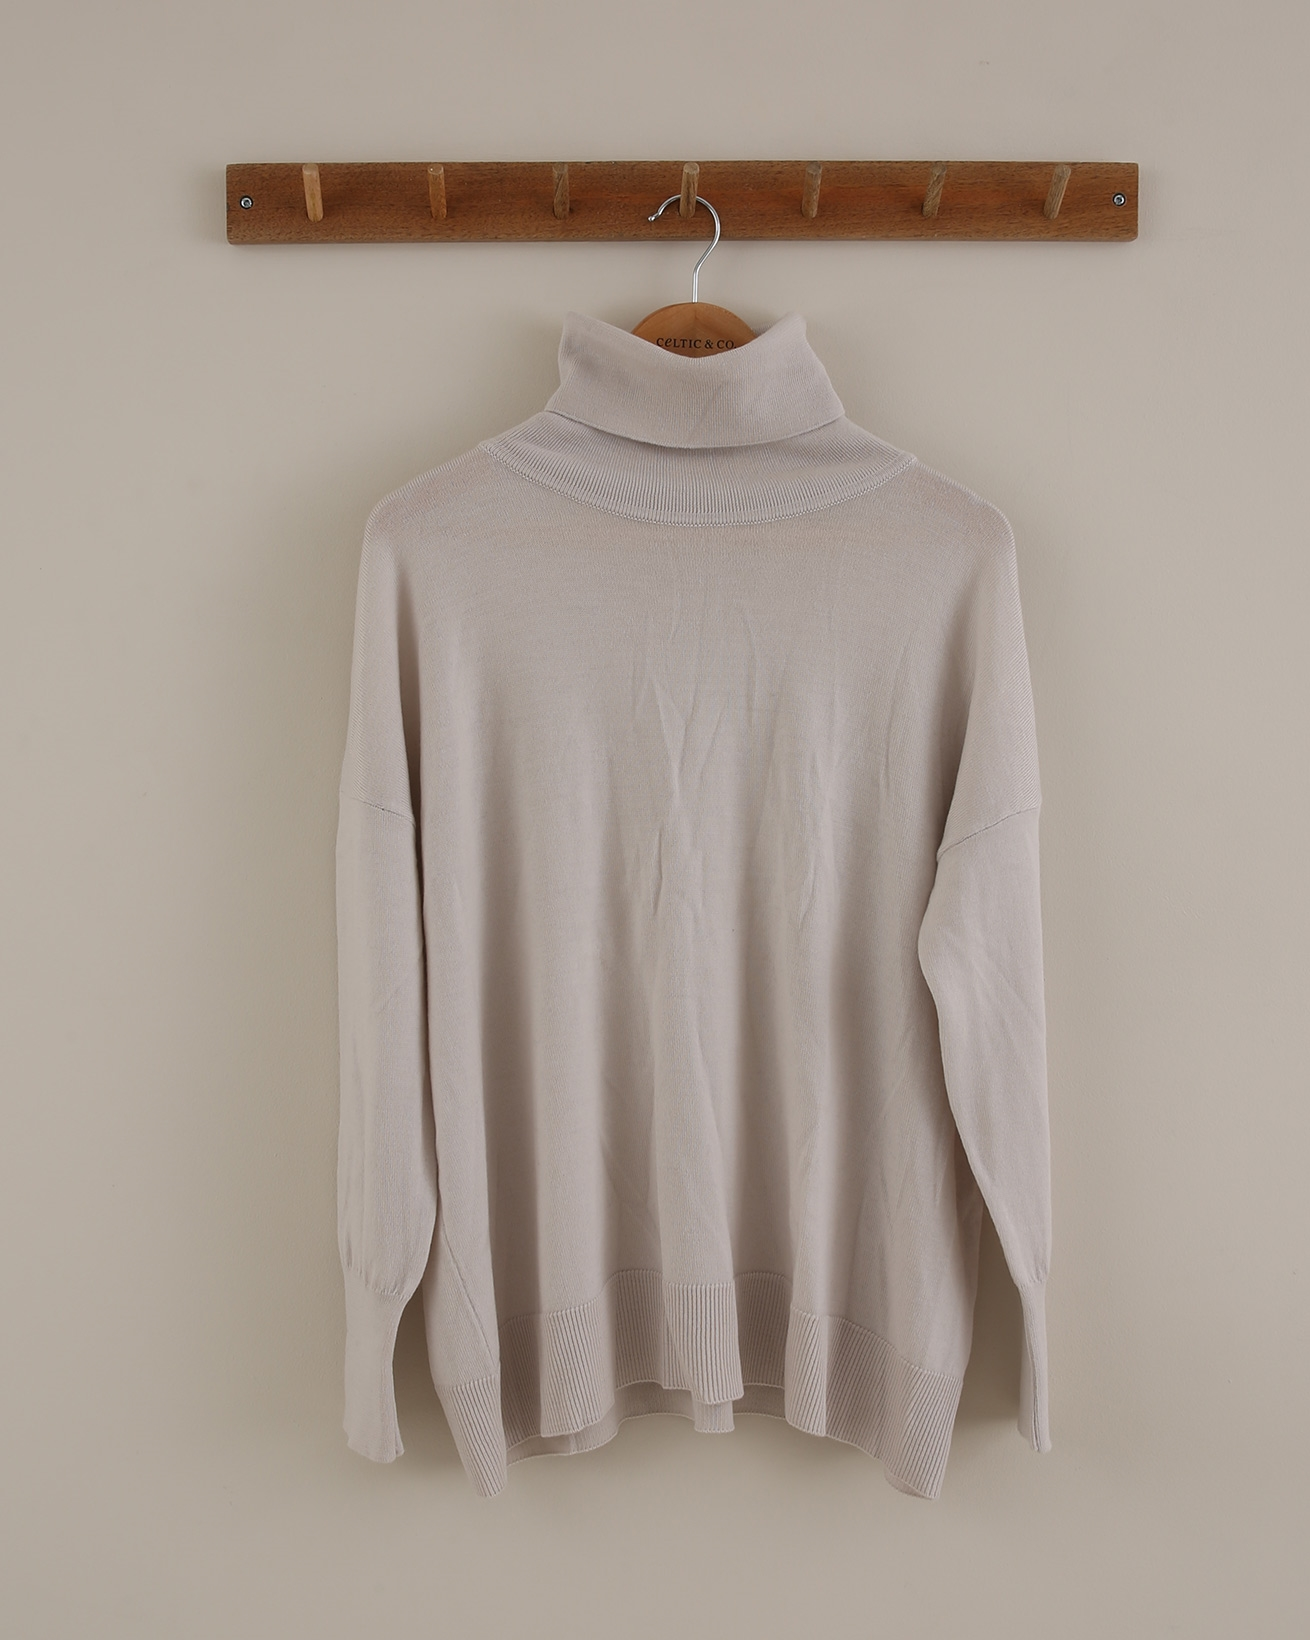 Slouchy Knit Roll Neck - Size Extra Small - Oatmeal - 1786